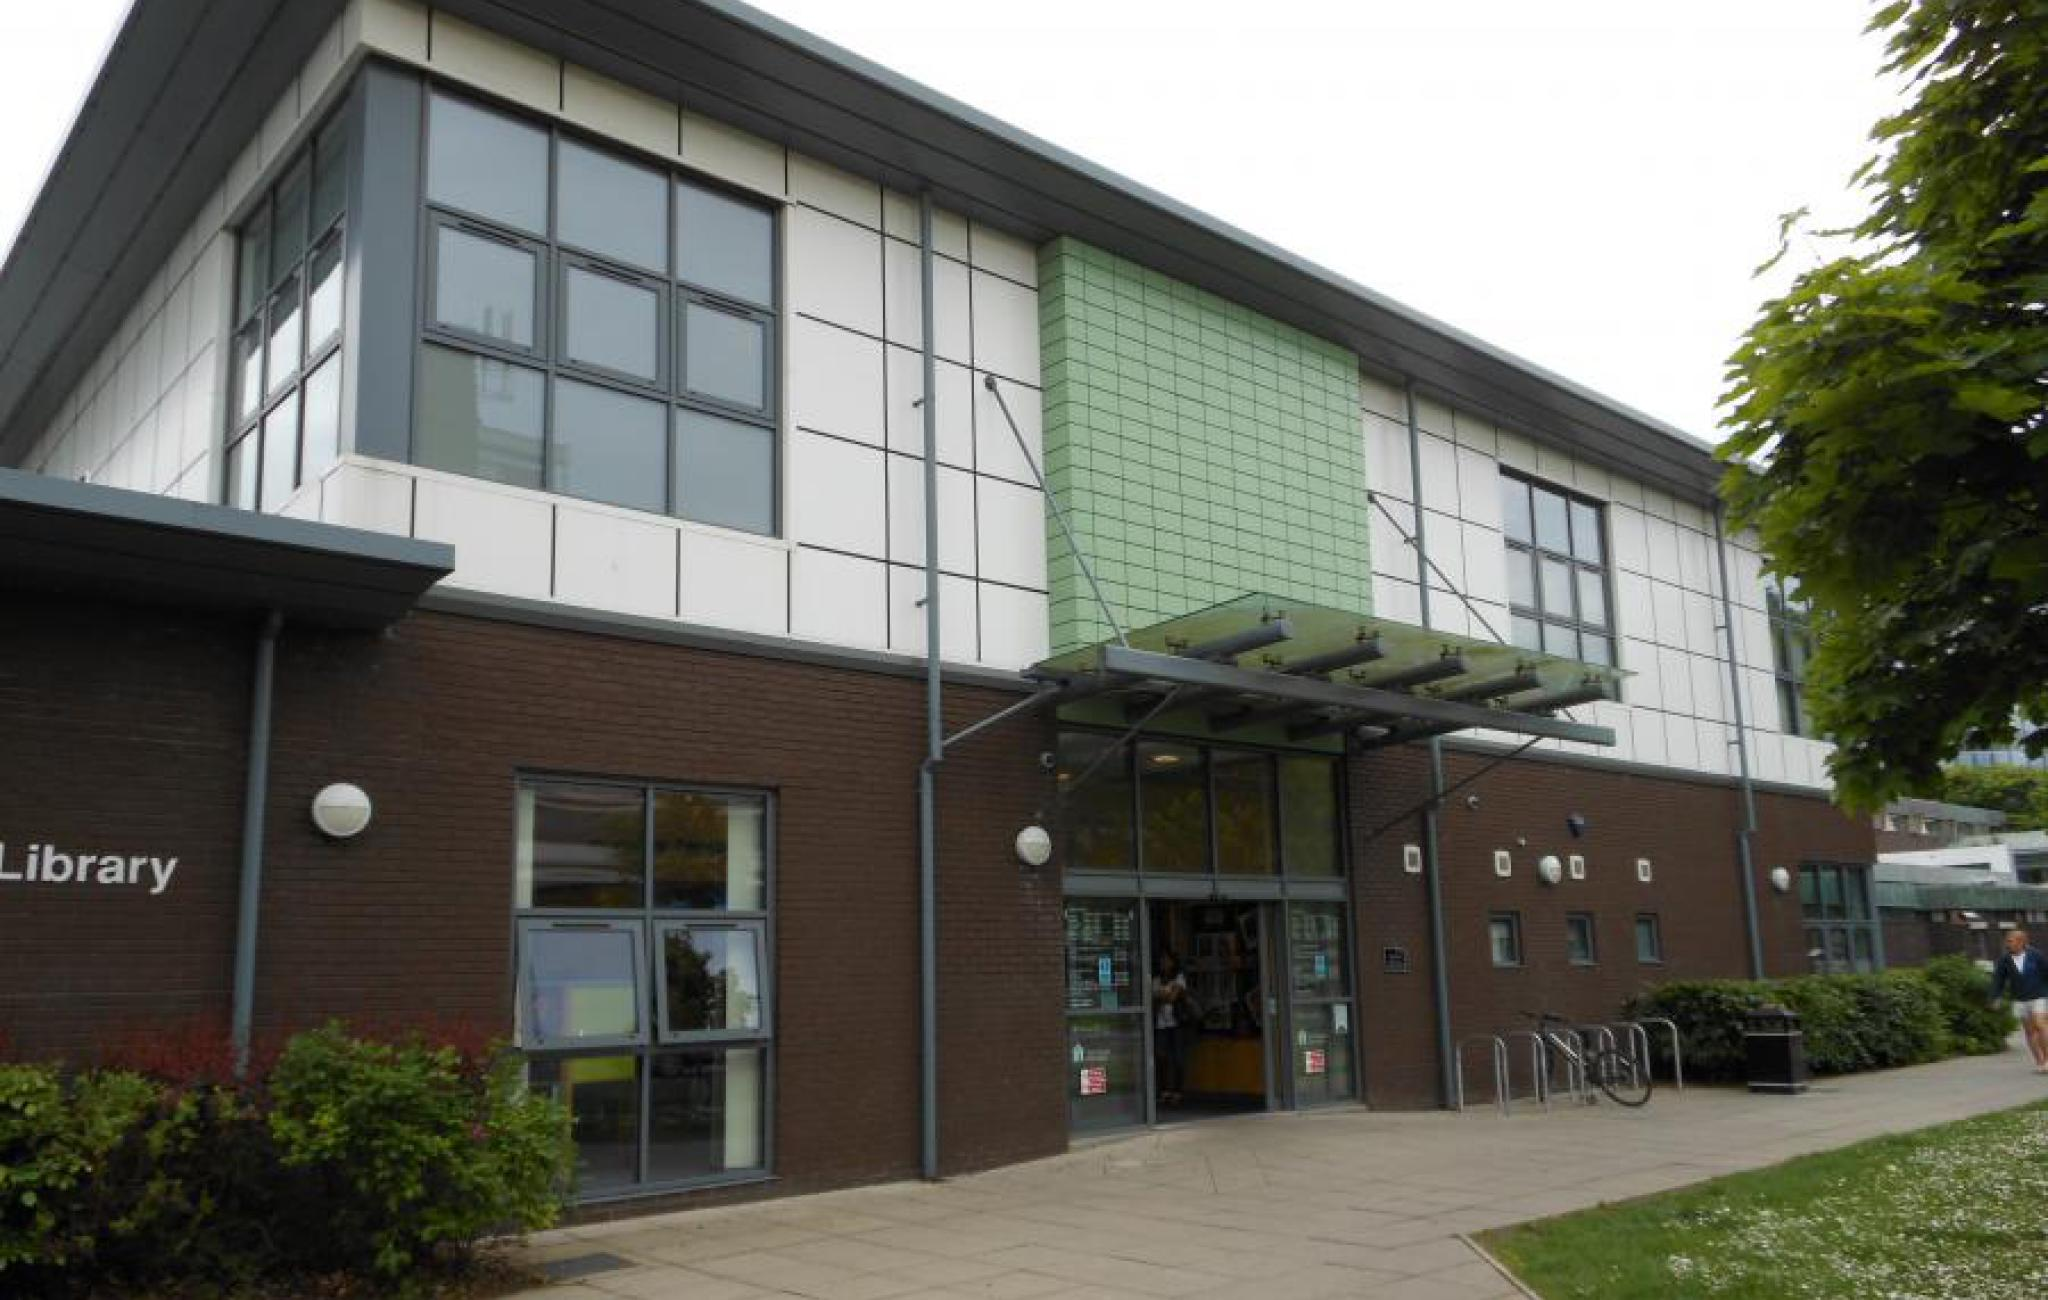 Image of the Gosforth Library and Learning Centre